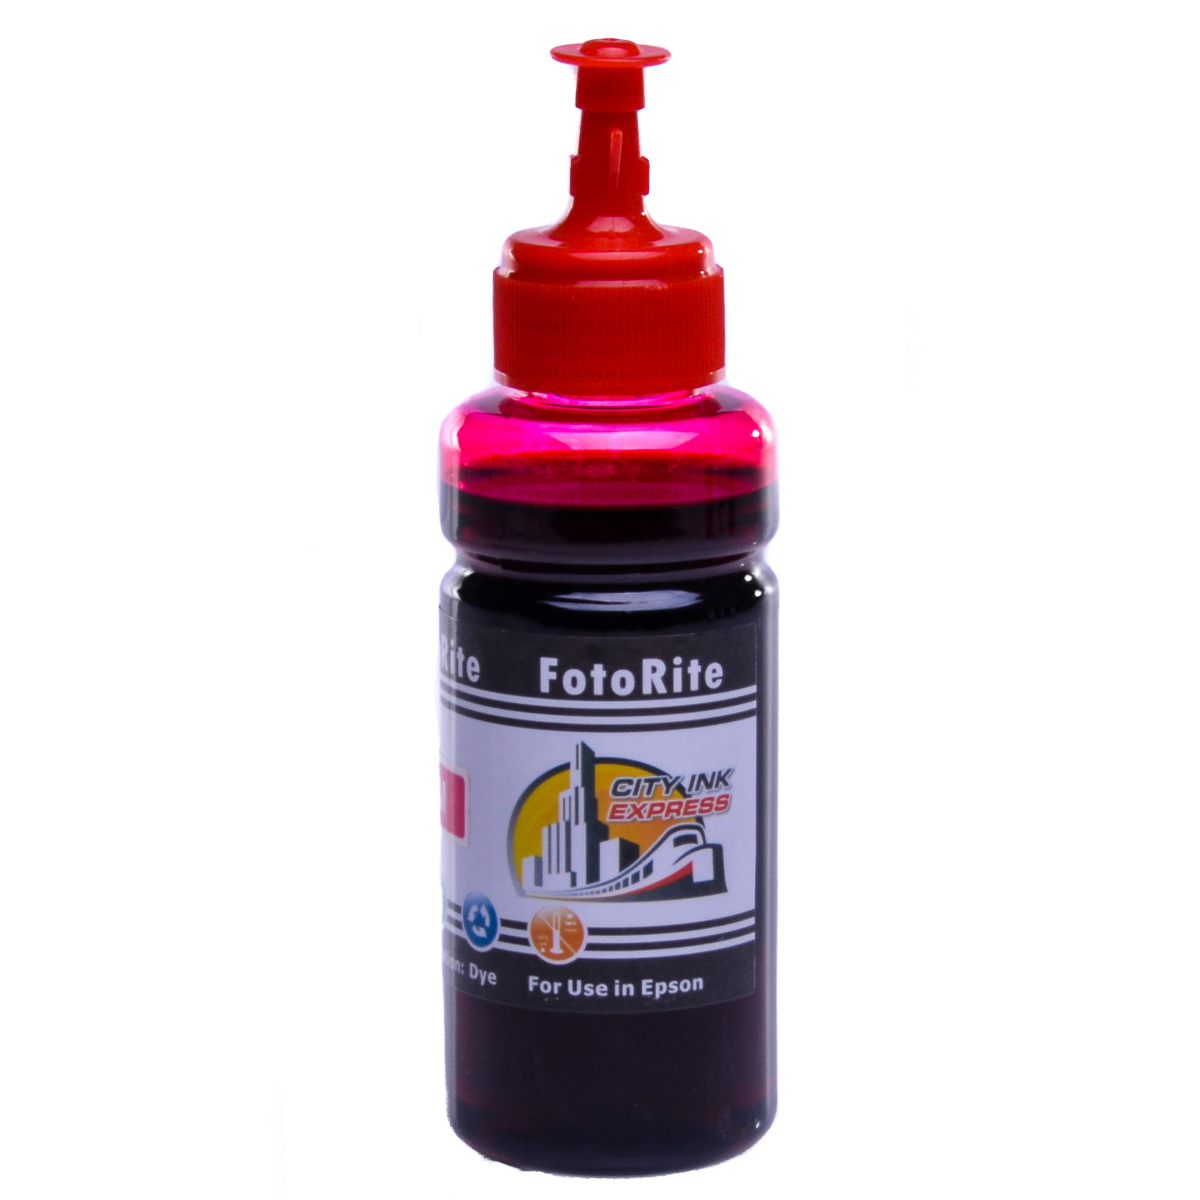 Cheap Magenta dye ink refill replaces Epson Stylus SX438W - T1283